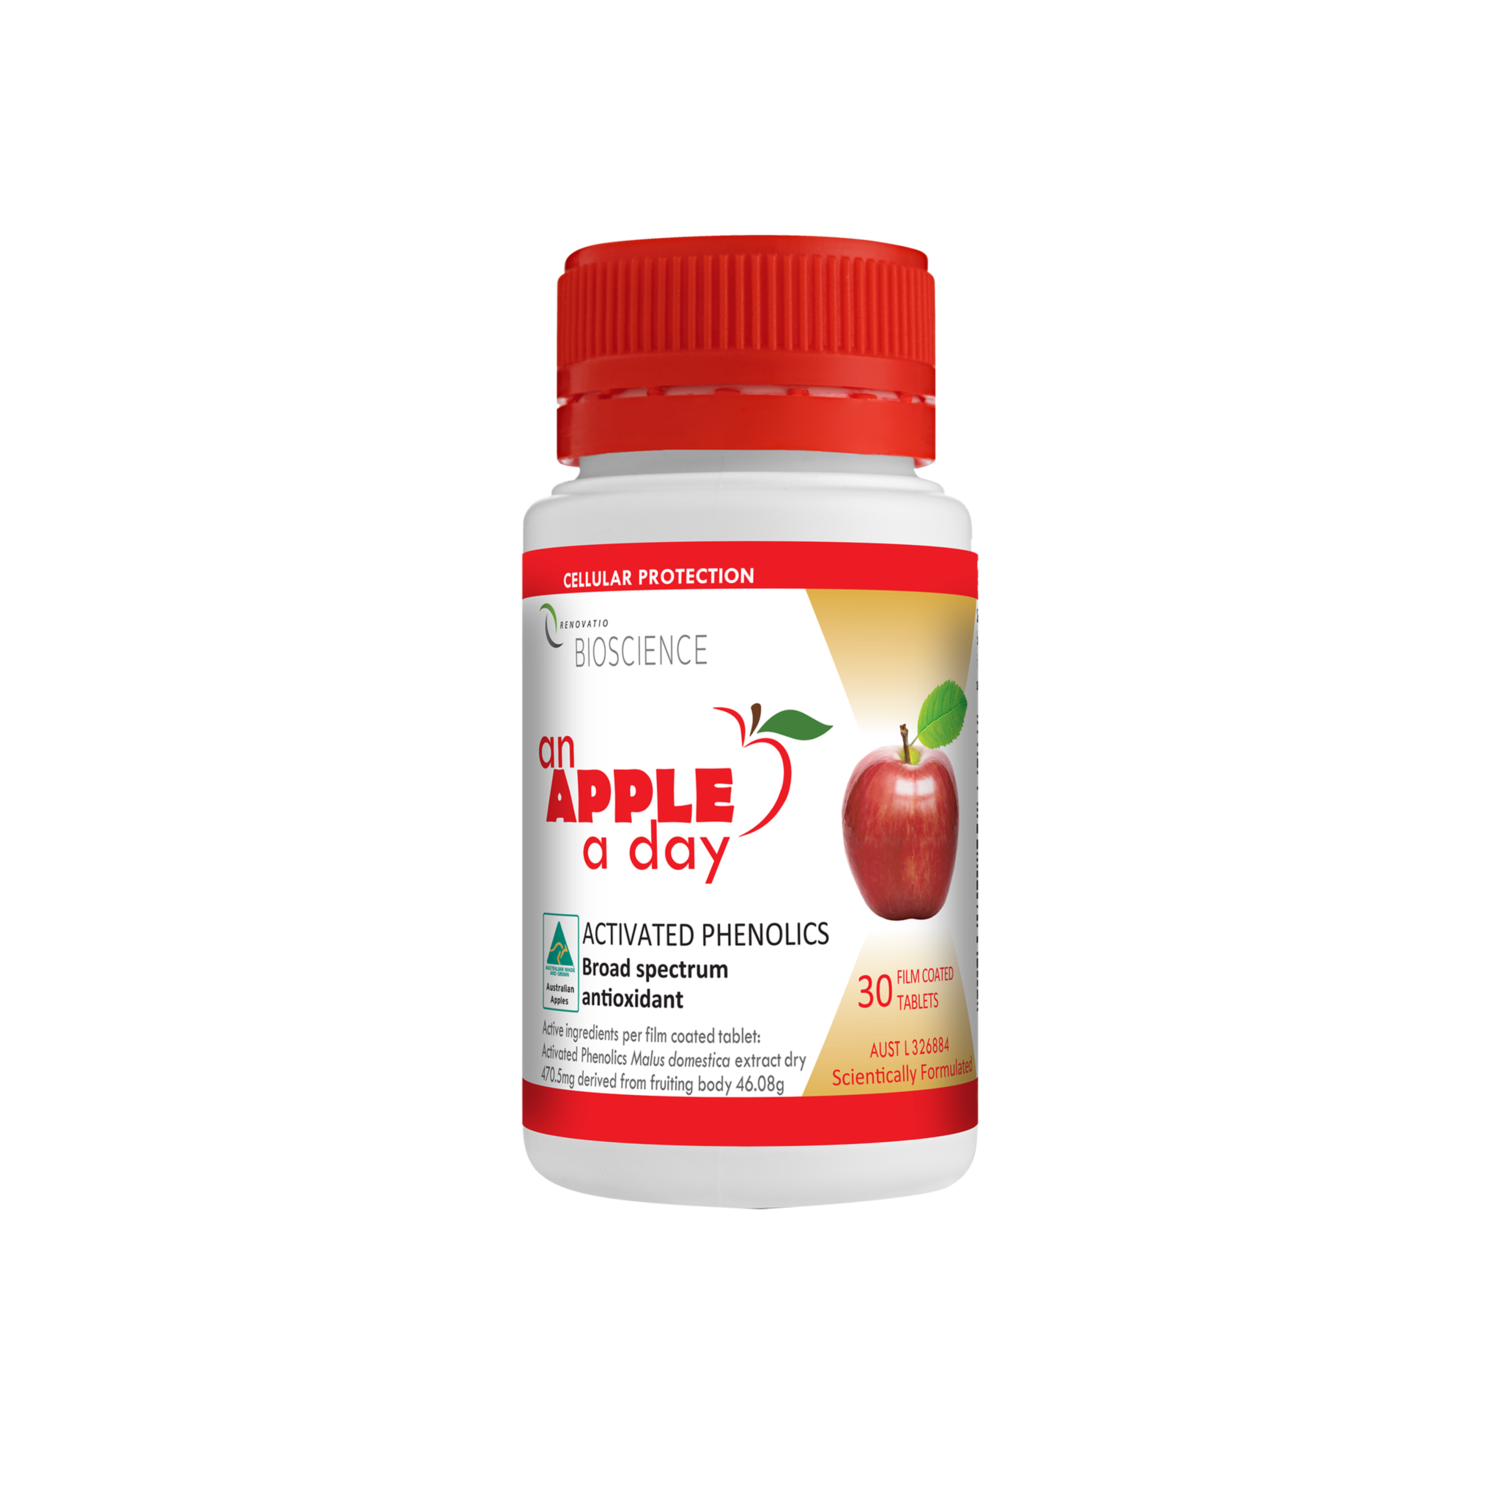 Renovatio An Apple A Day Activated Phenolics Tablets